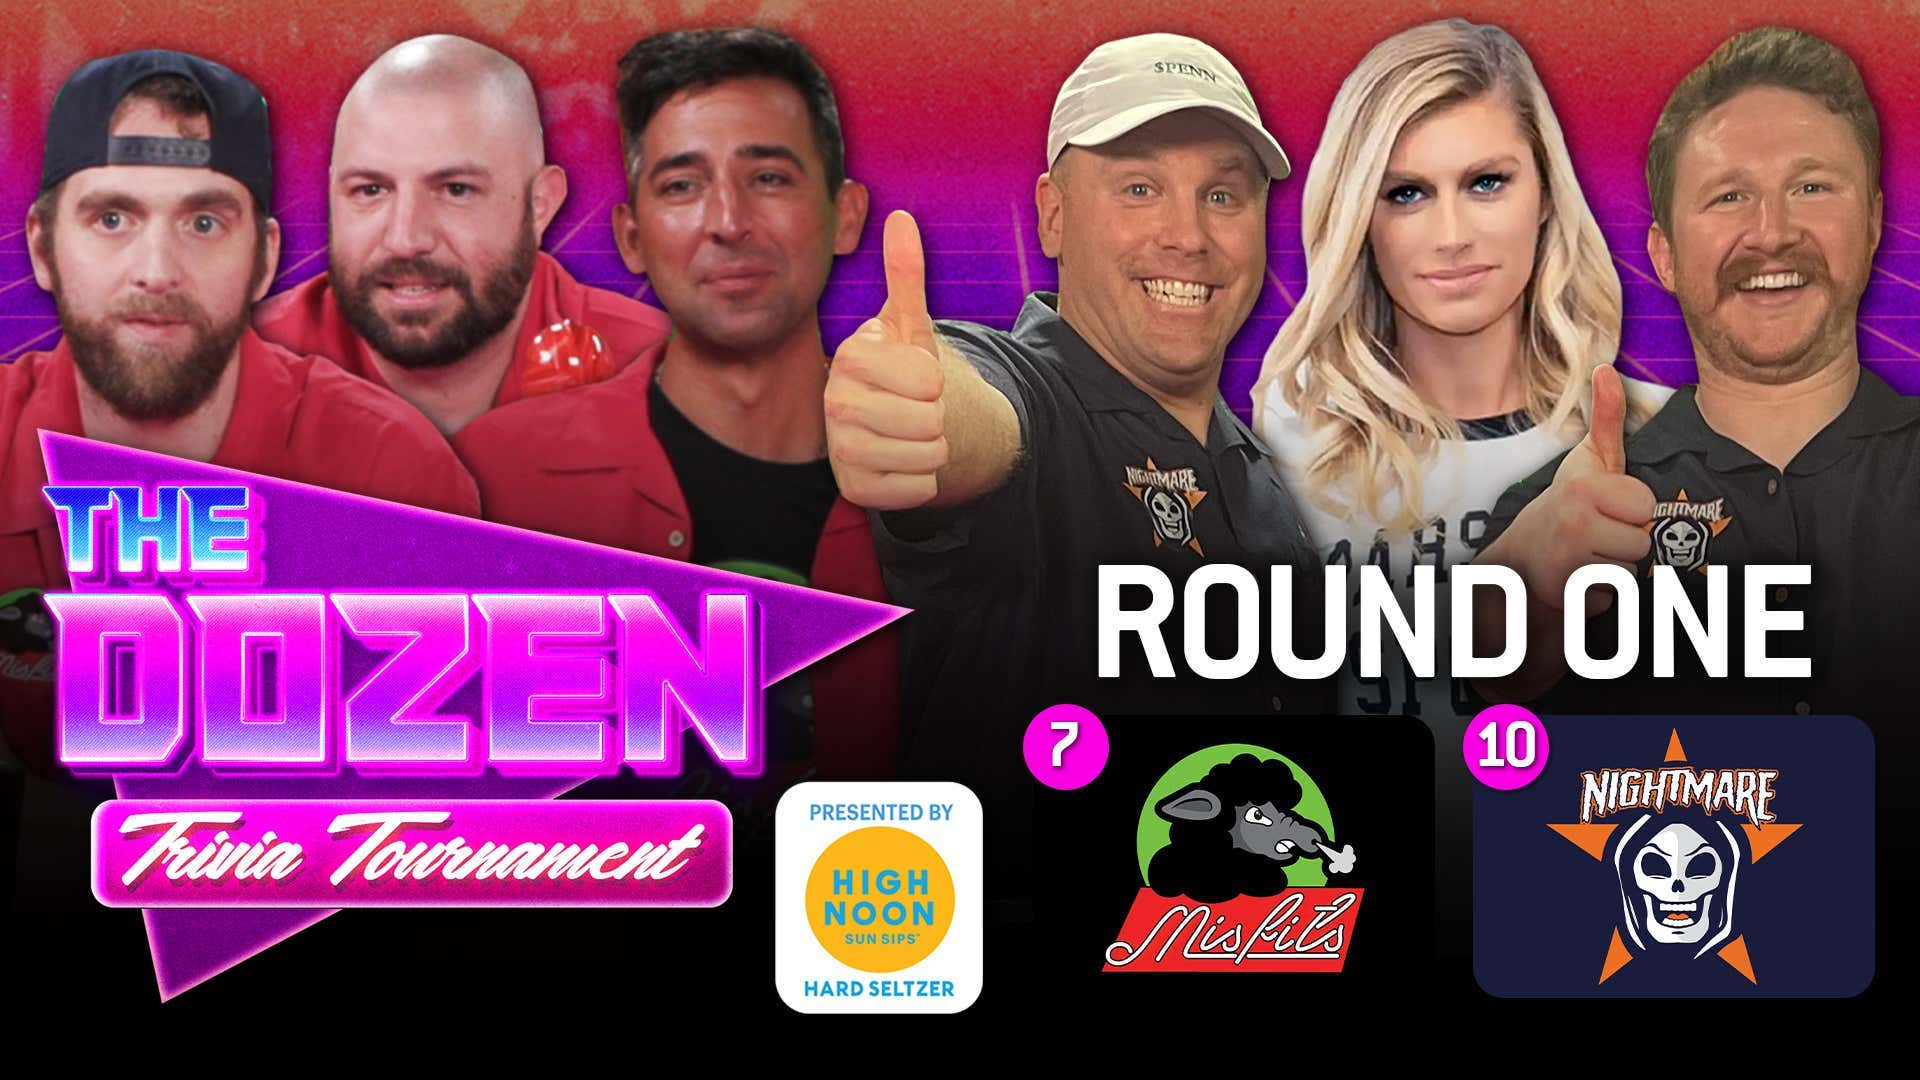 The Misfits vs. Nightmare (The Dozen: Trivia Tournament pres. by High Noon Round 1, Match 5)